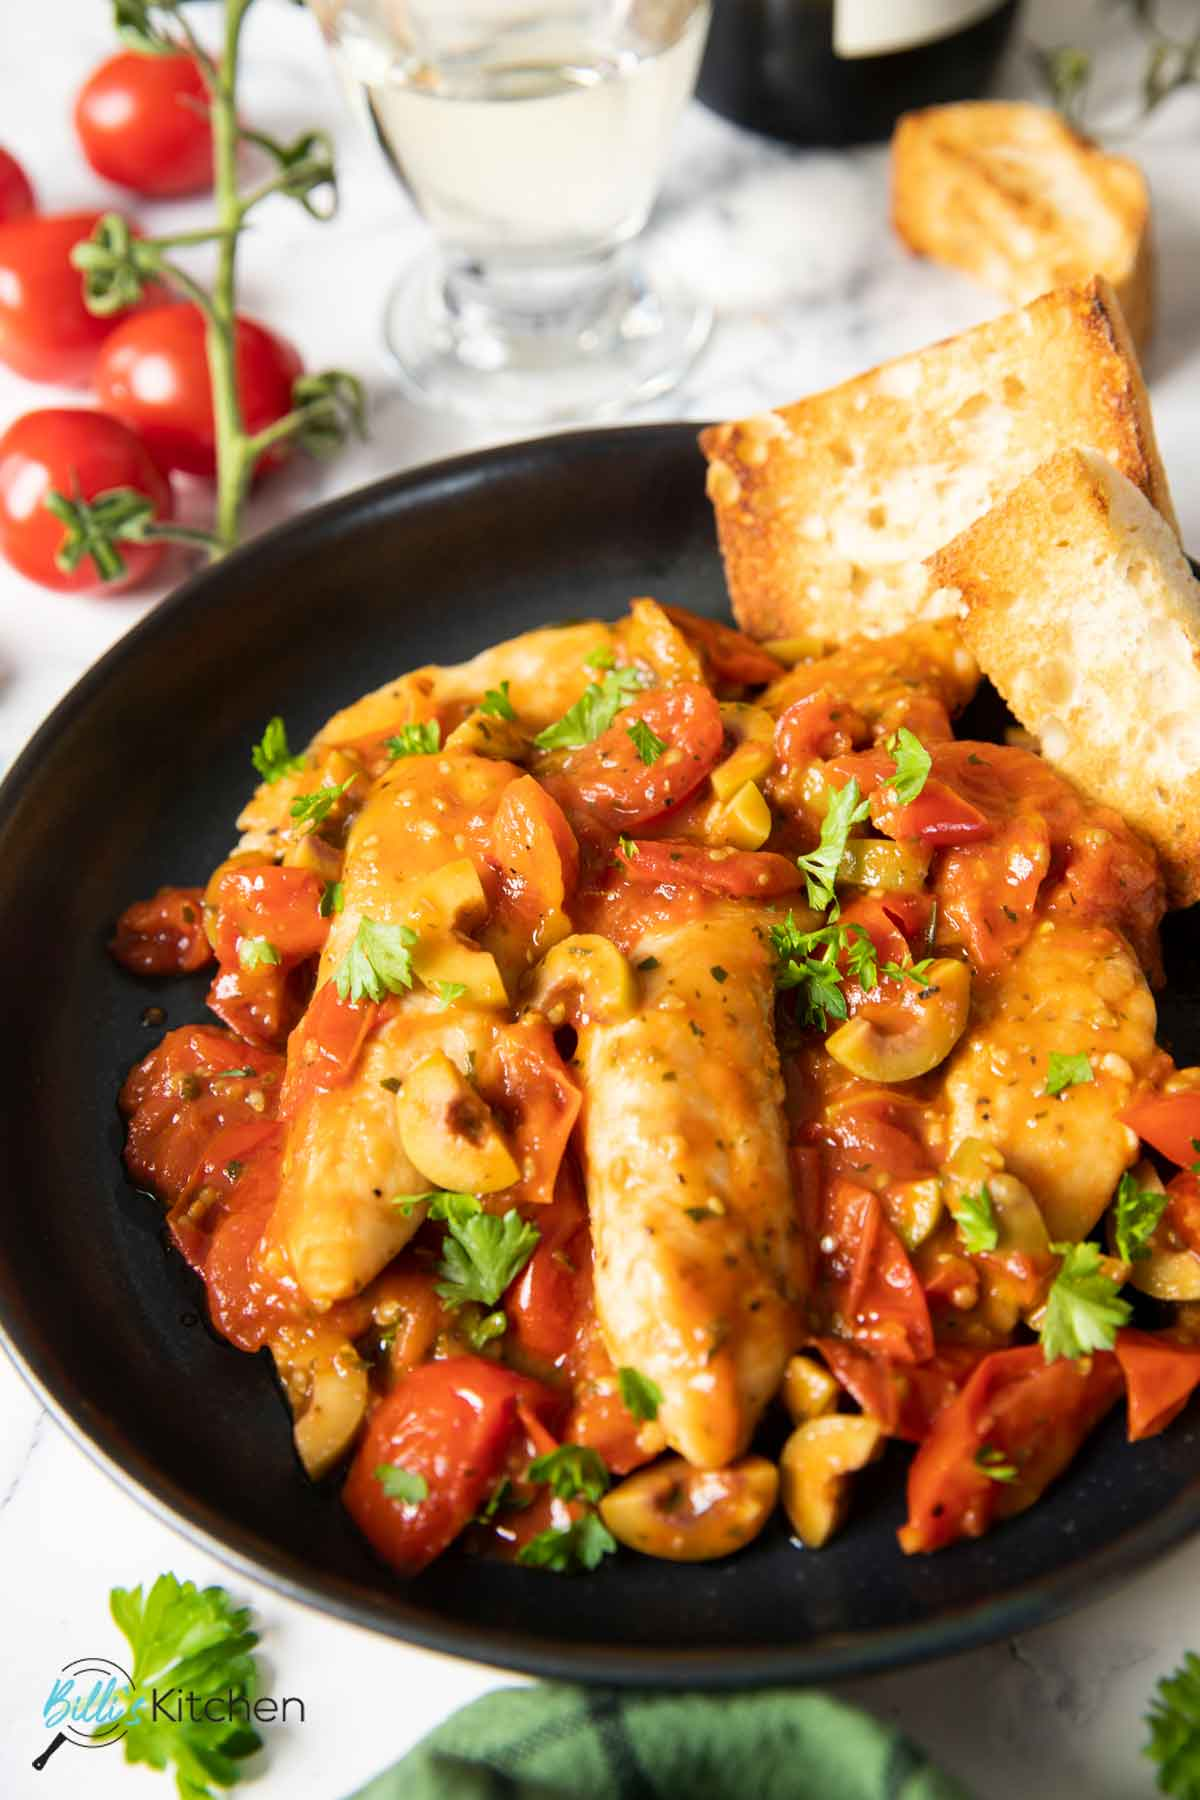 A close shot of a serving of chicken and tomatoes, showing the burst tomatoes and the chopped olives in the sauce.